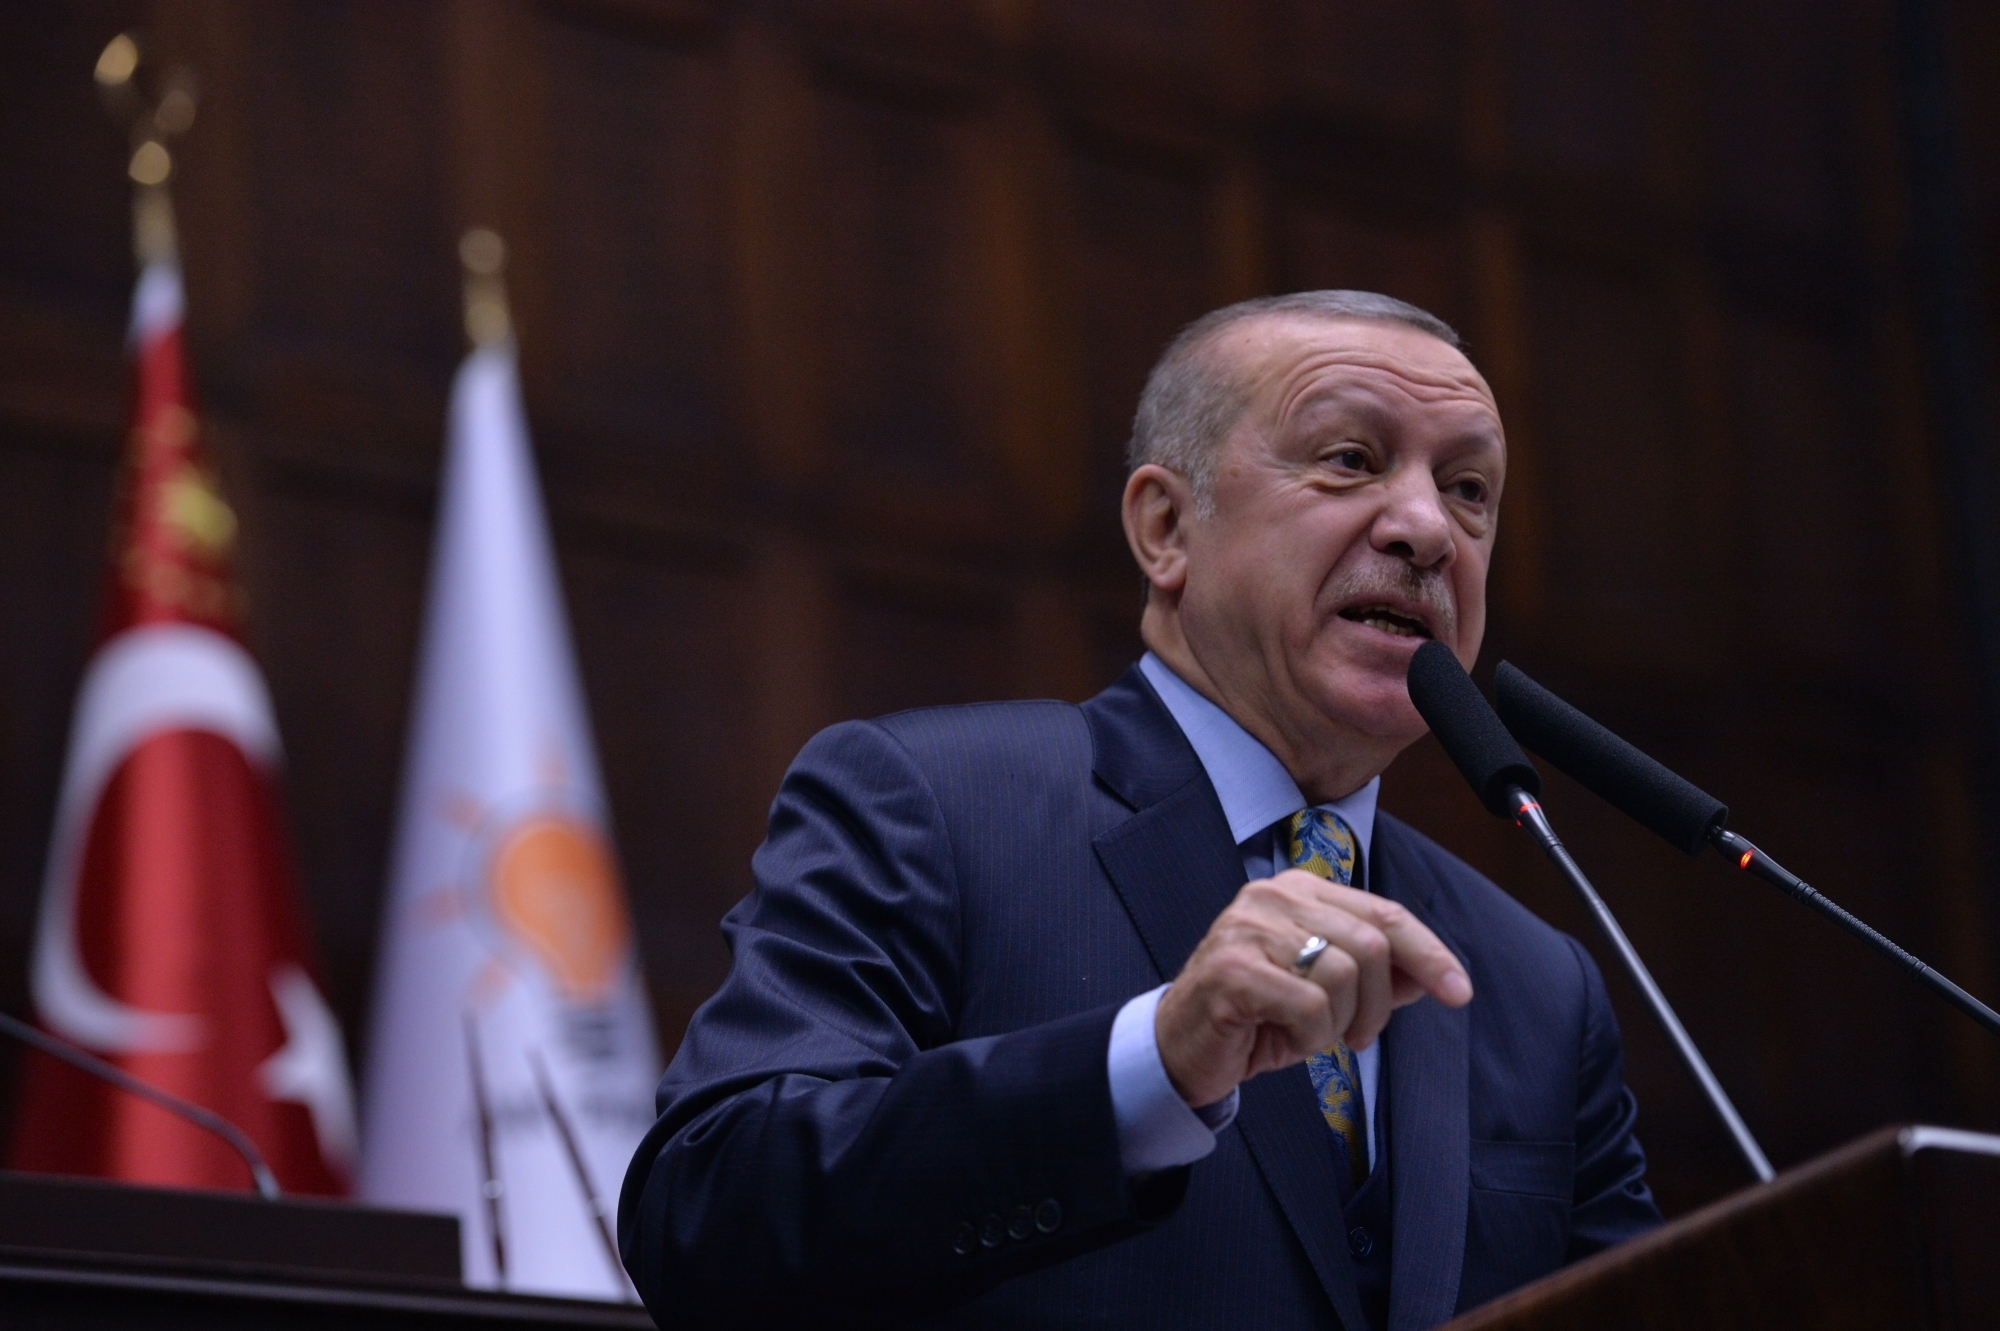 Turkey's Erdogan hopes to work with Russia in Nagorno-Karabakh solution